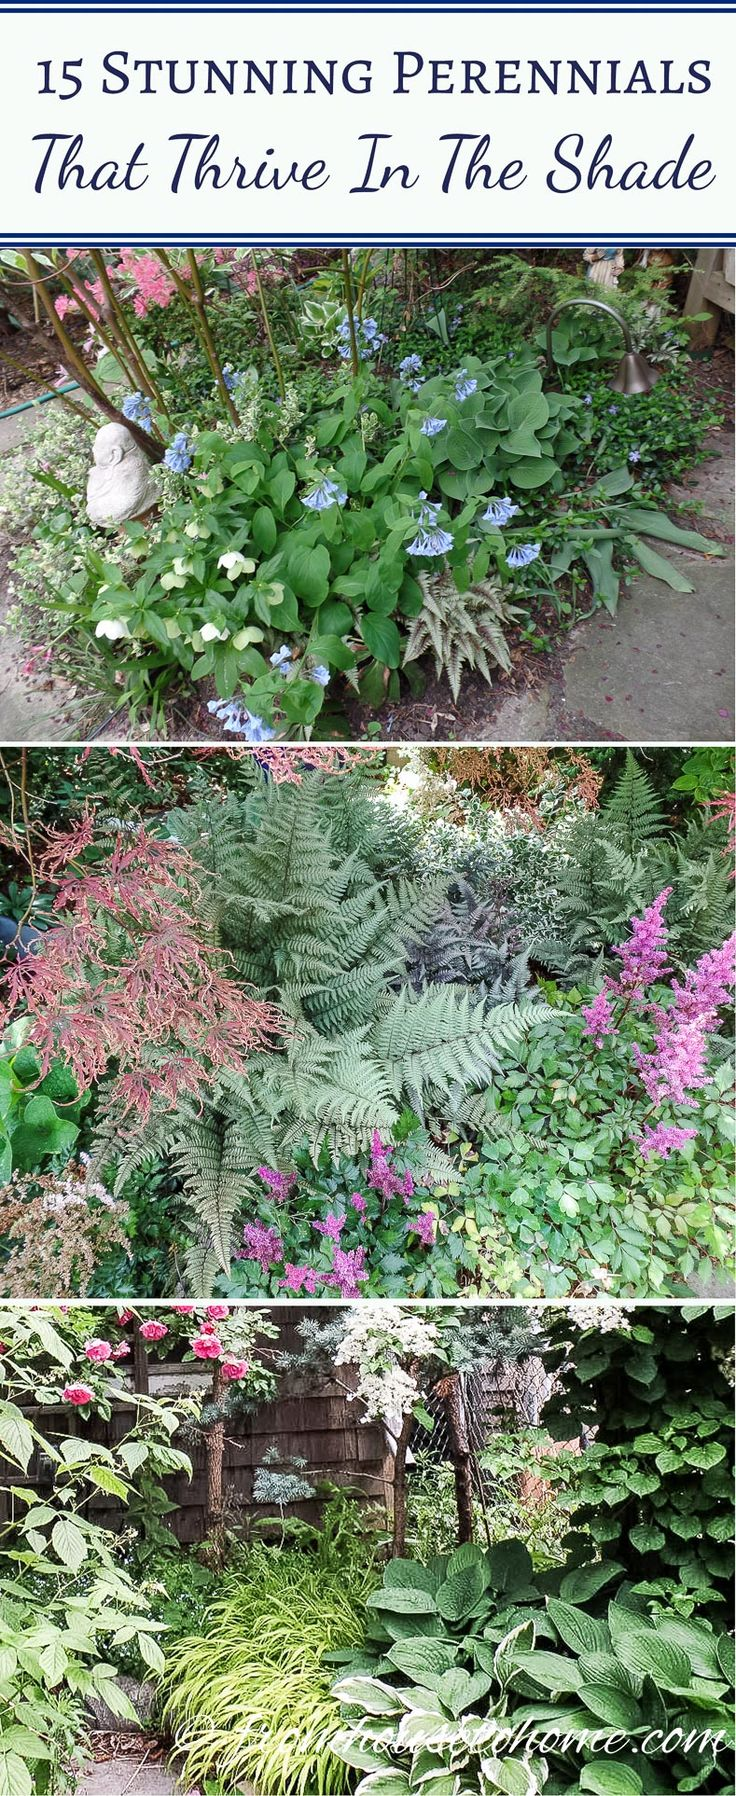 How to plant ground cover for shady areas - 15 Stunning Perennials That Thrive In The Shade